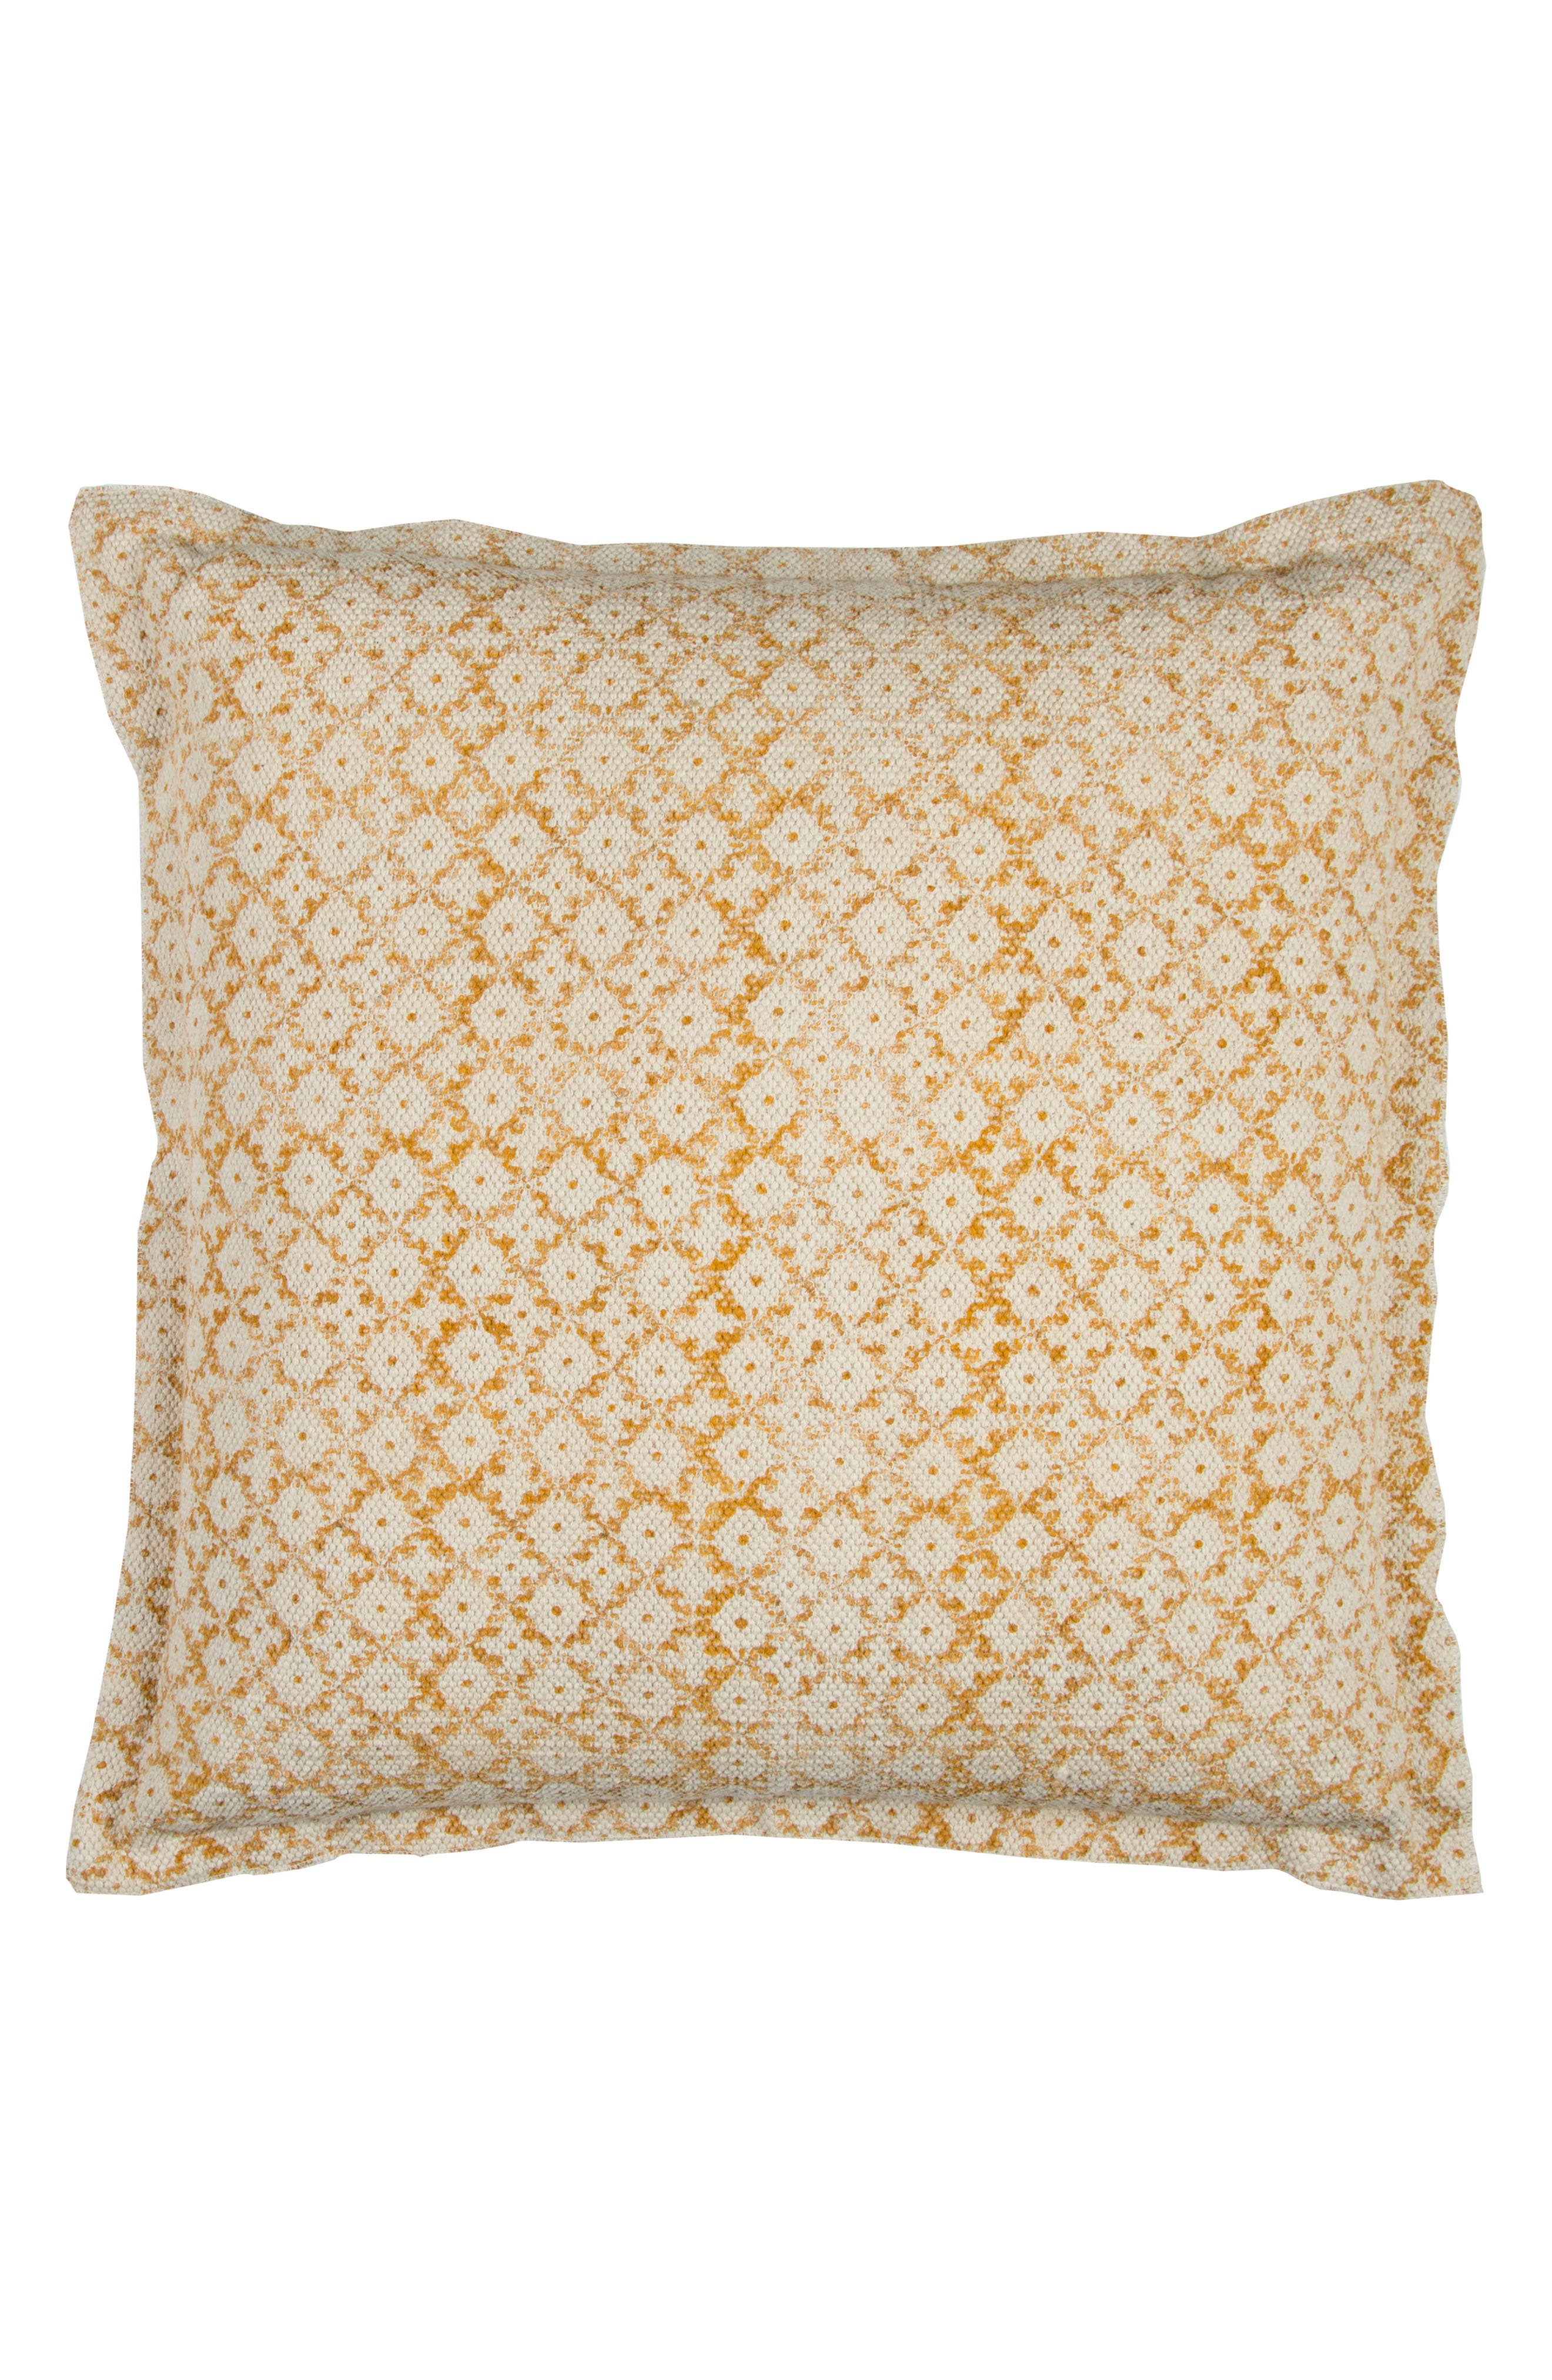 Main Image - Rizzy Home Geometric Accent Pillow